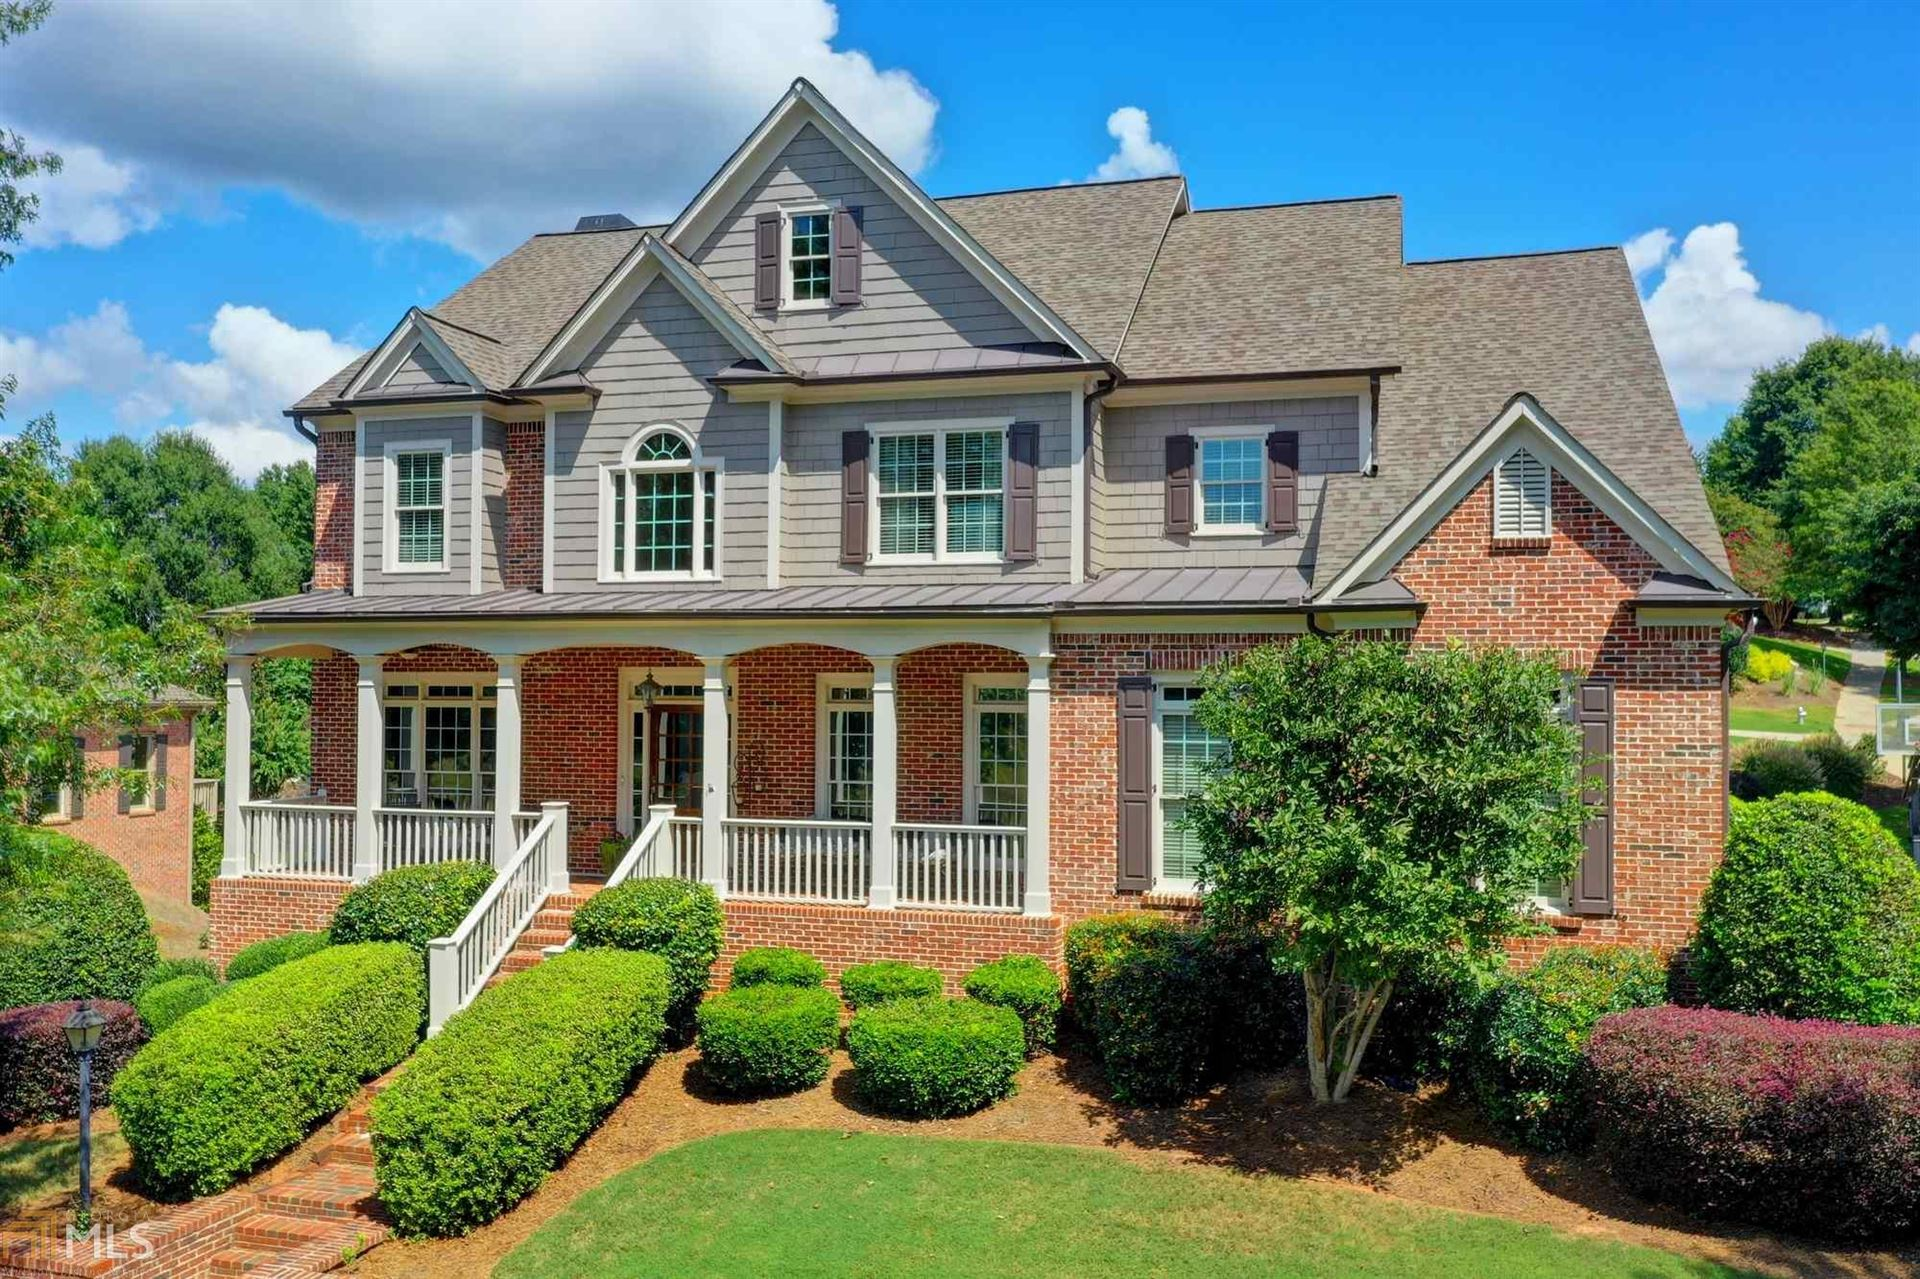 1103 Meadow Club Ct, Suwanee, GA 30024 - #: 8856503